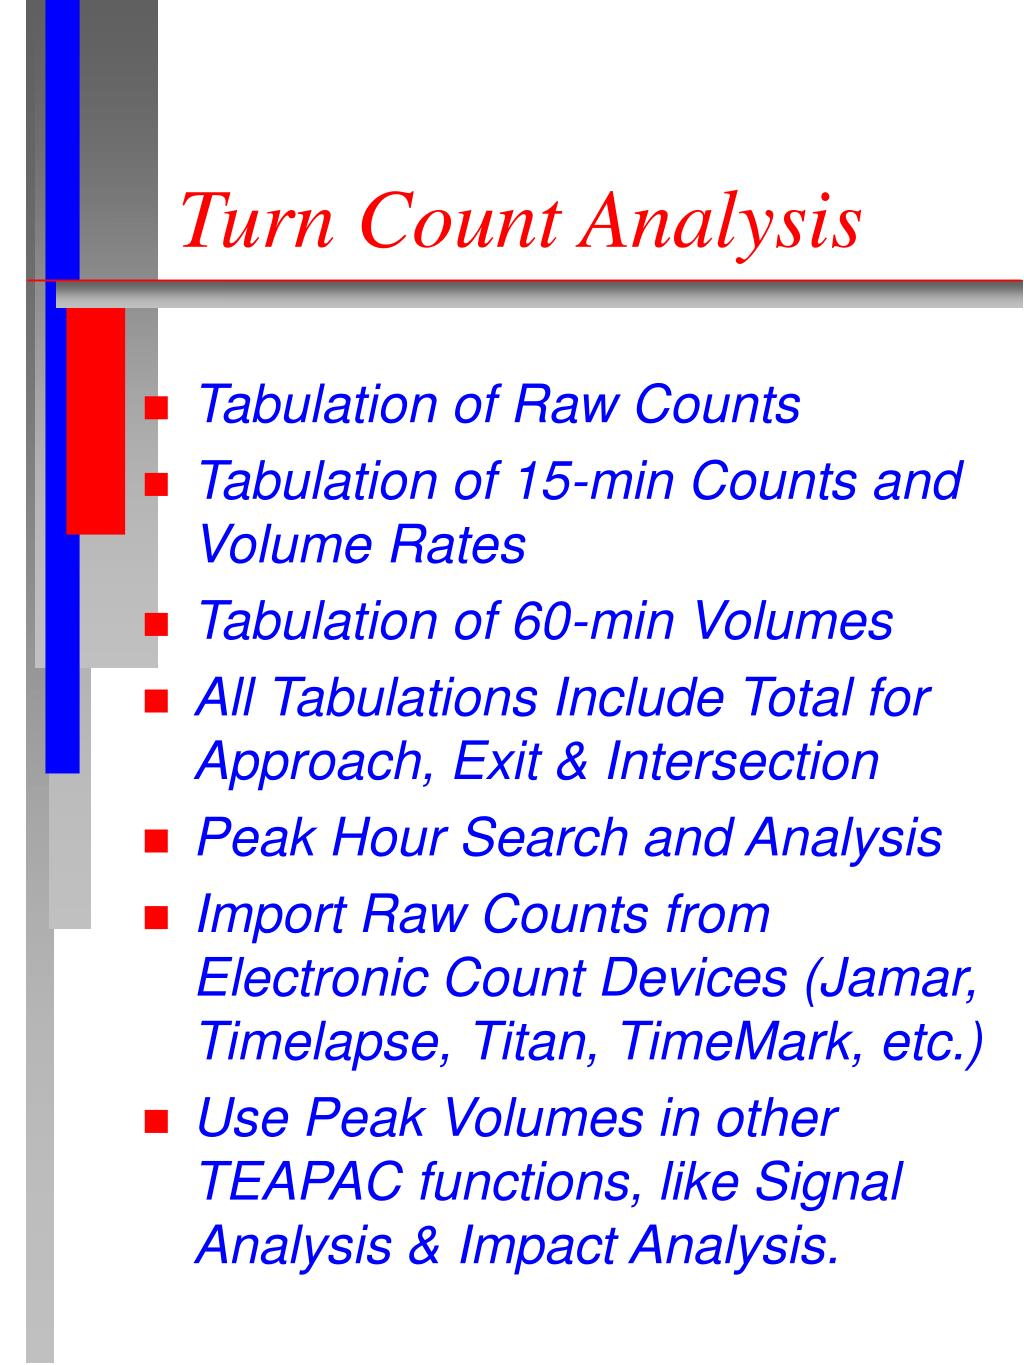 Turn Count Analysis